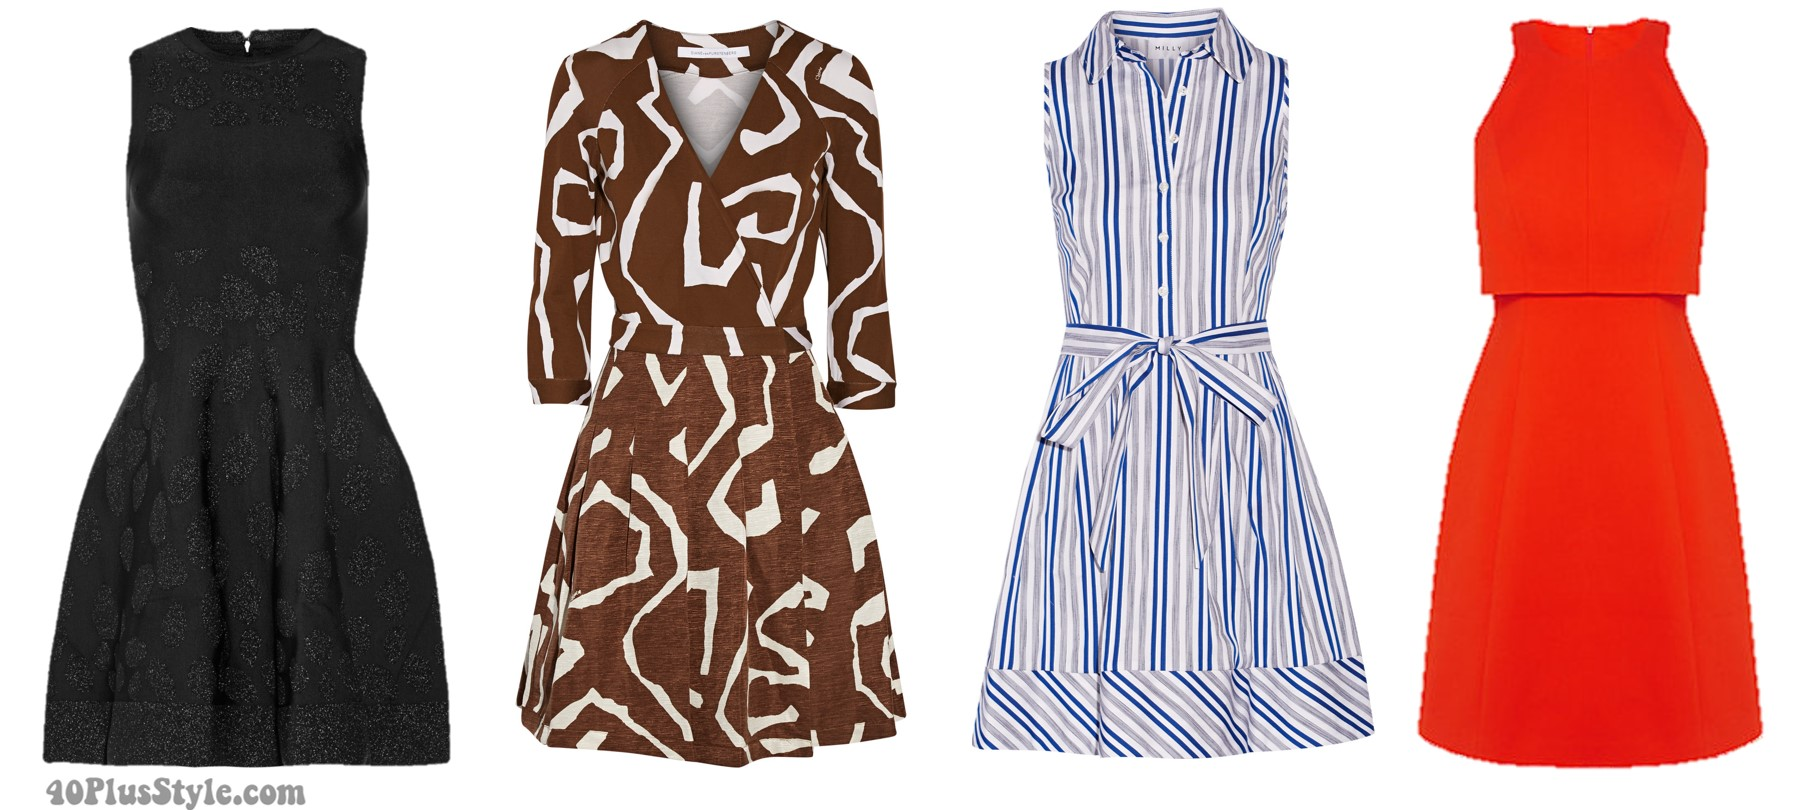 Inverted triangle body shape spring looks dresses a-line | 40plusstyle.com